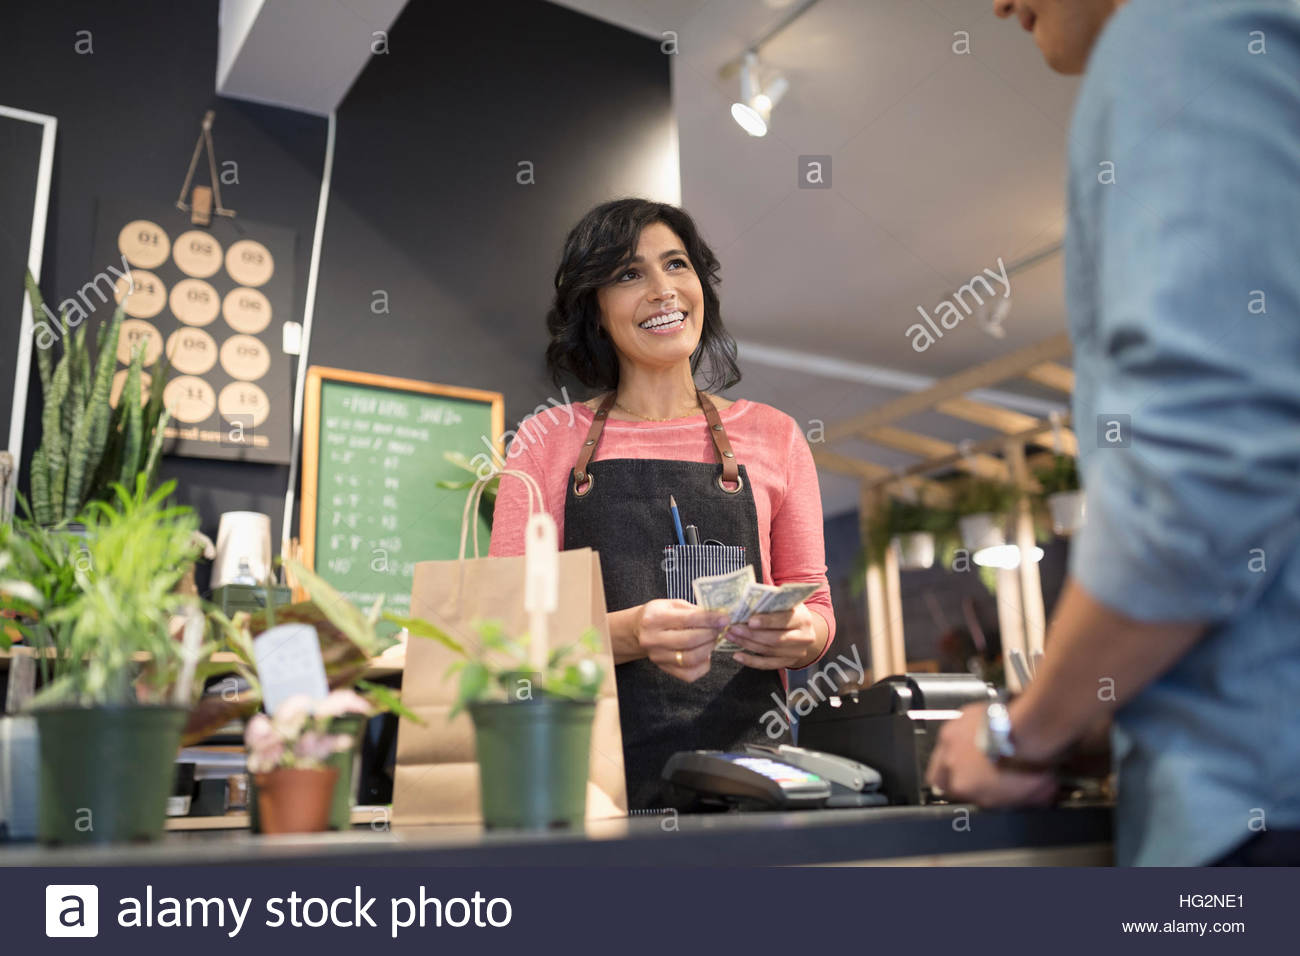 Female shop owner counting cash helping customer at plant shop counter - Stock Image